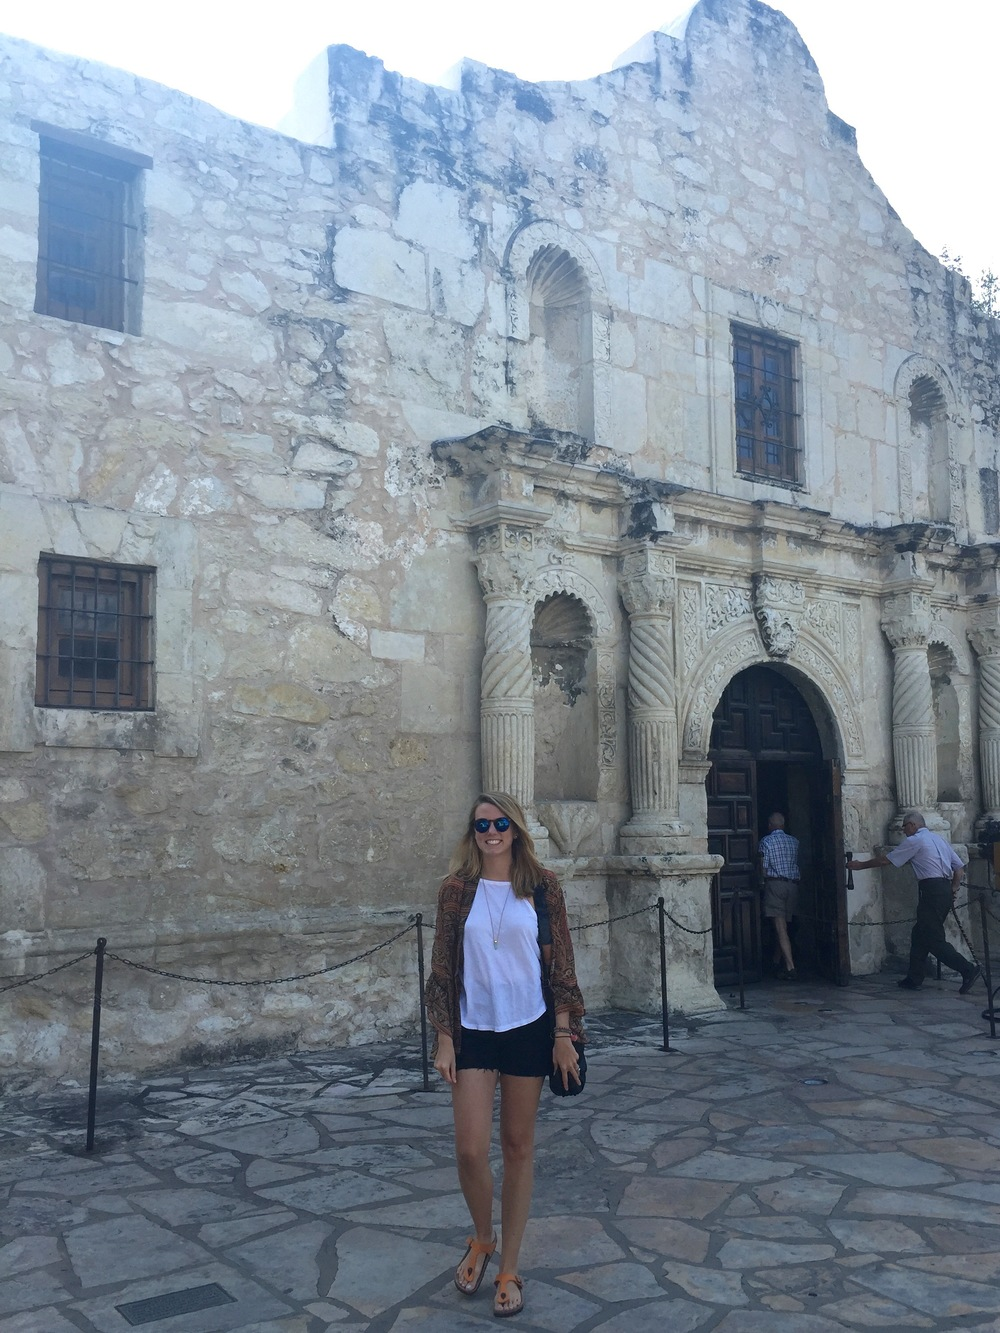 The Alamo, Mission Trail, San Antonio, Texas